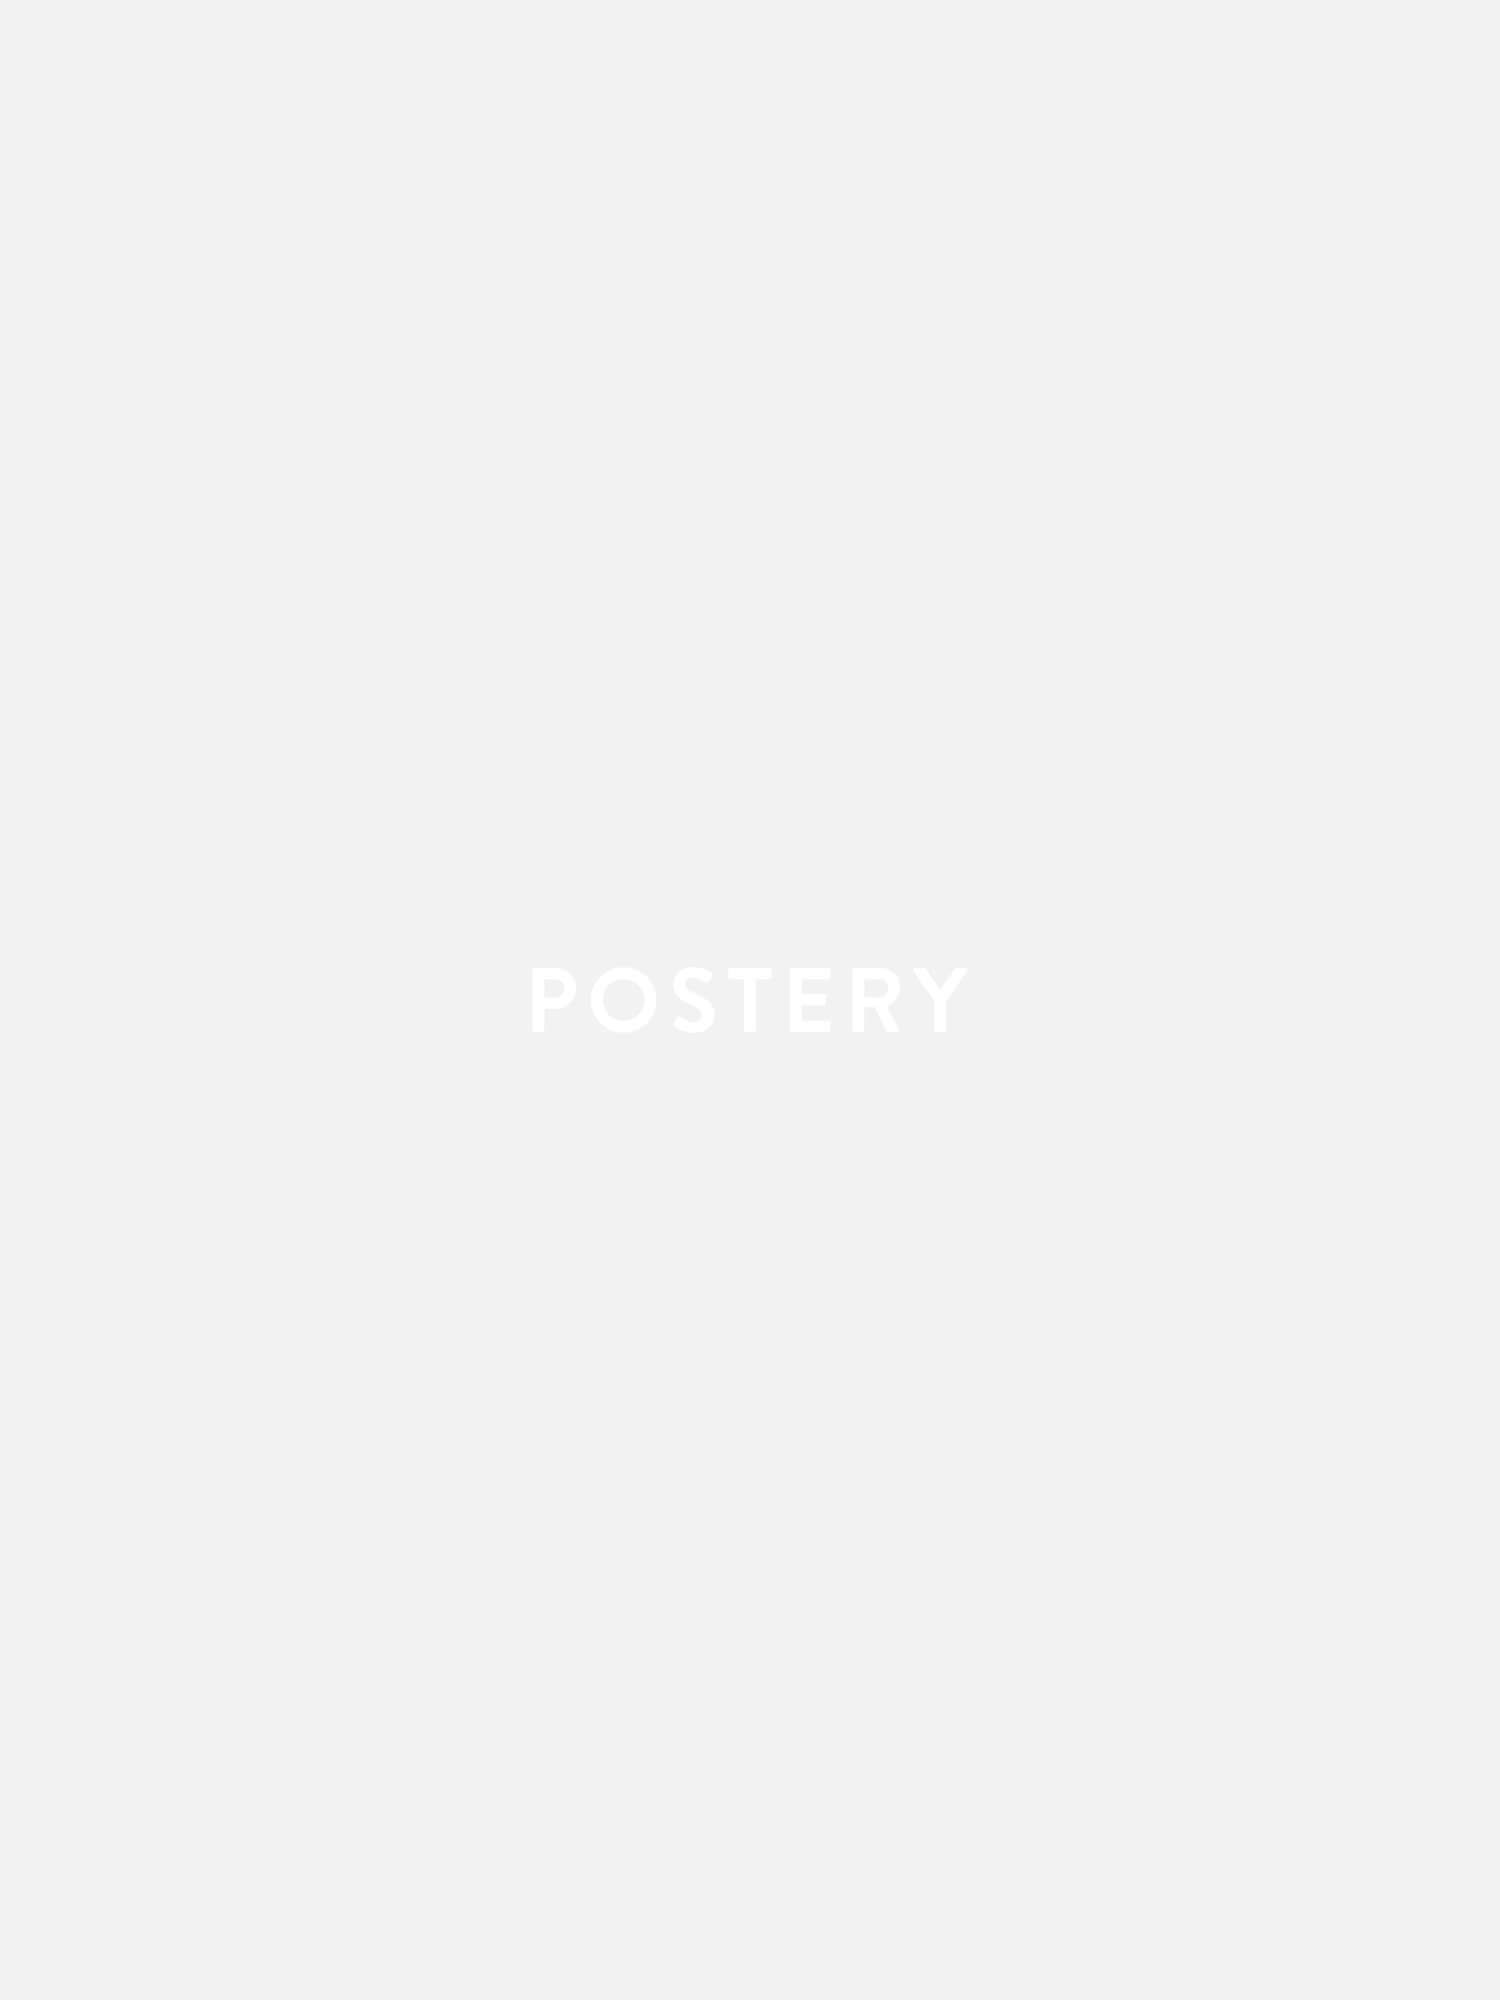 Home no.2 Poster